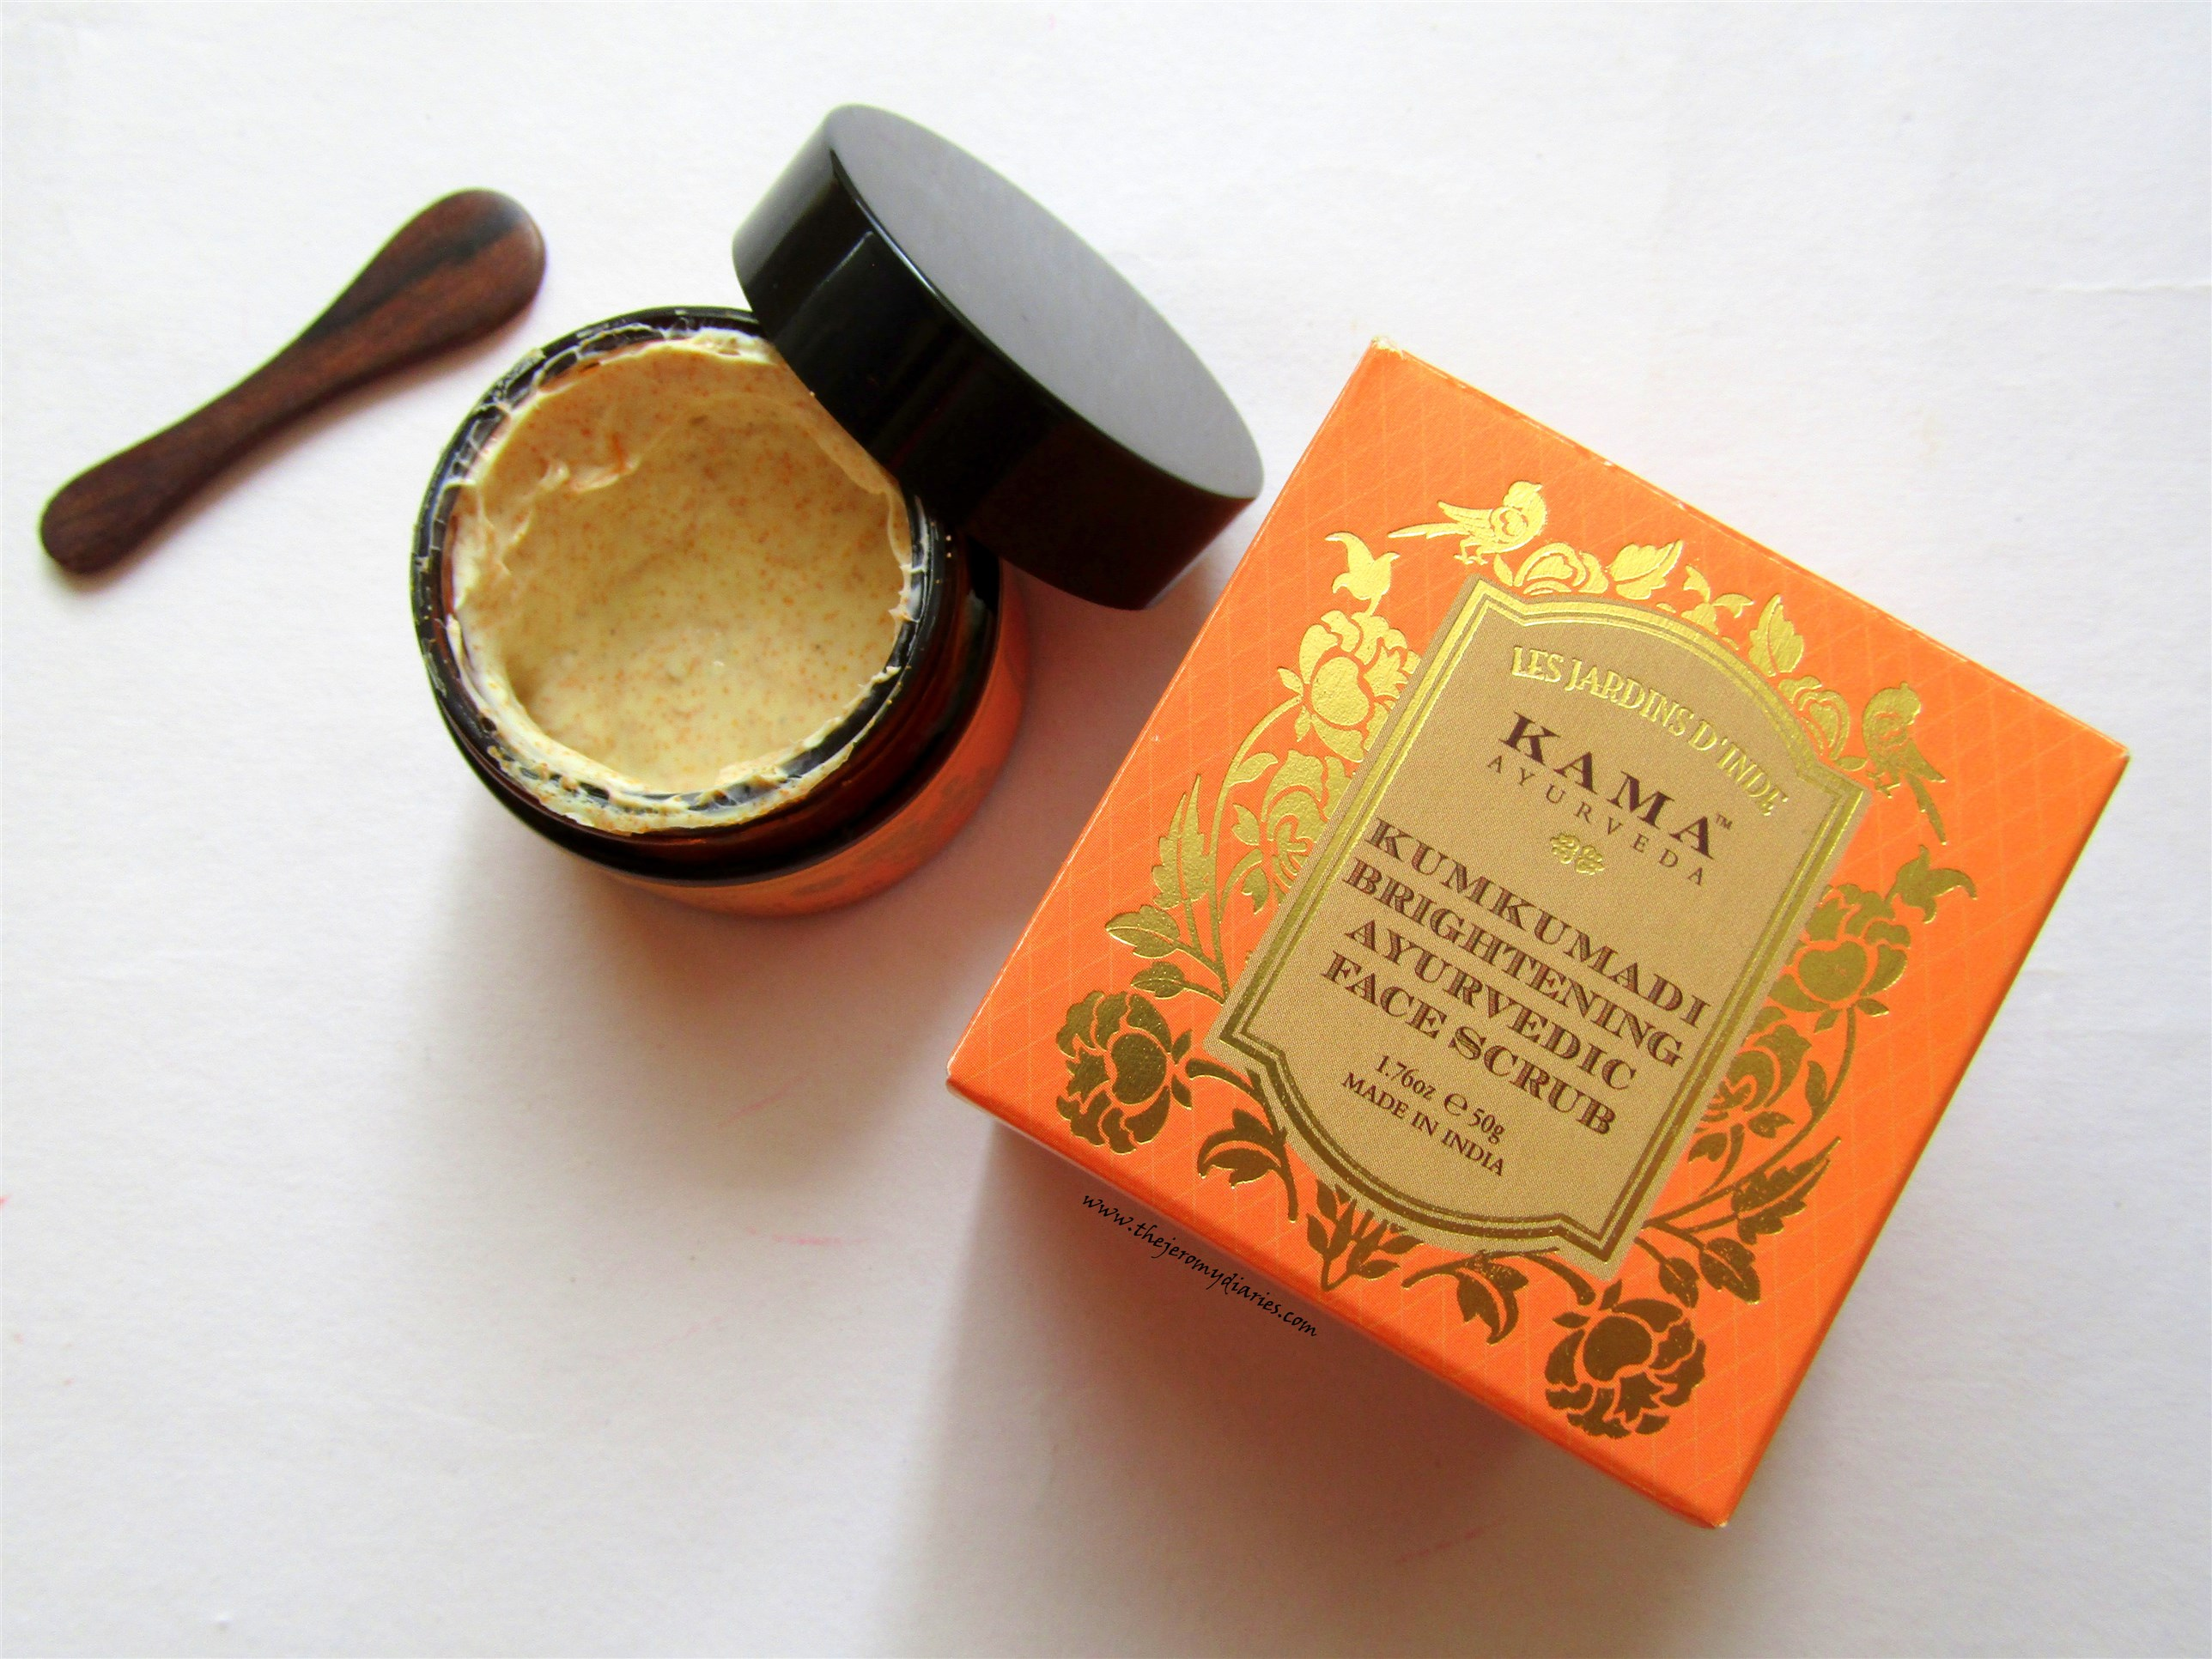 kama ayurveda products best face scrubs the jeromy diaries